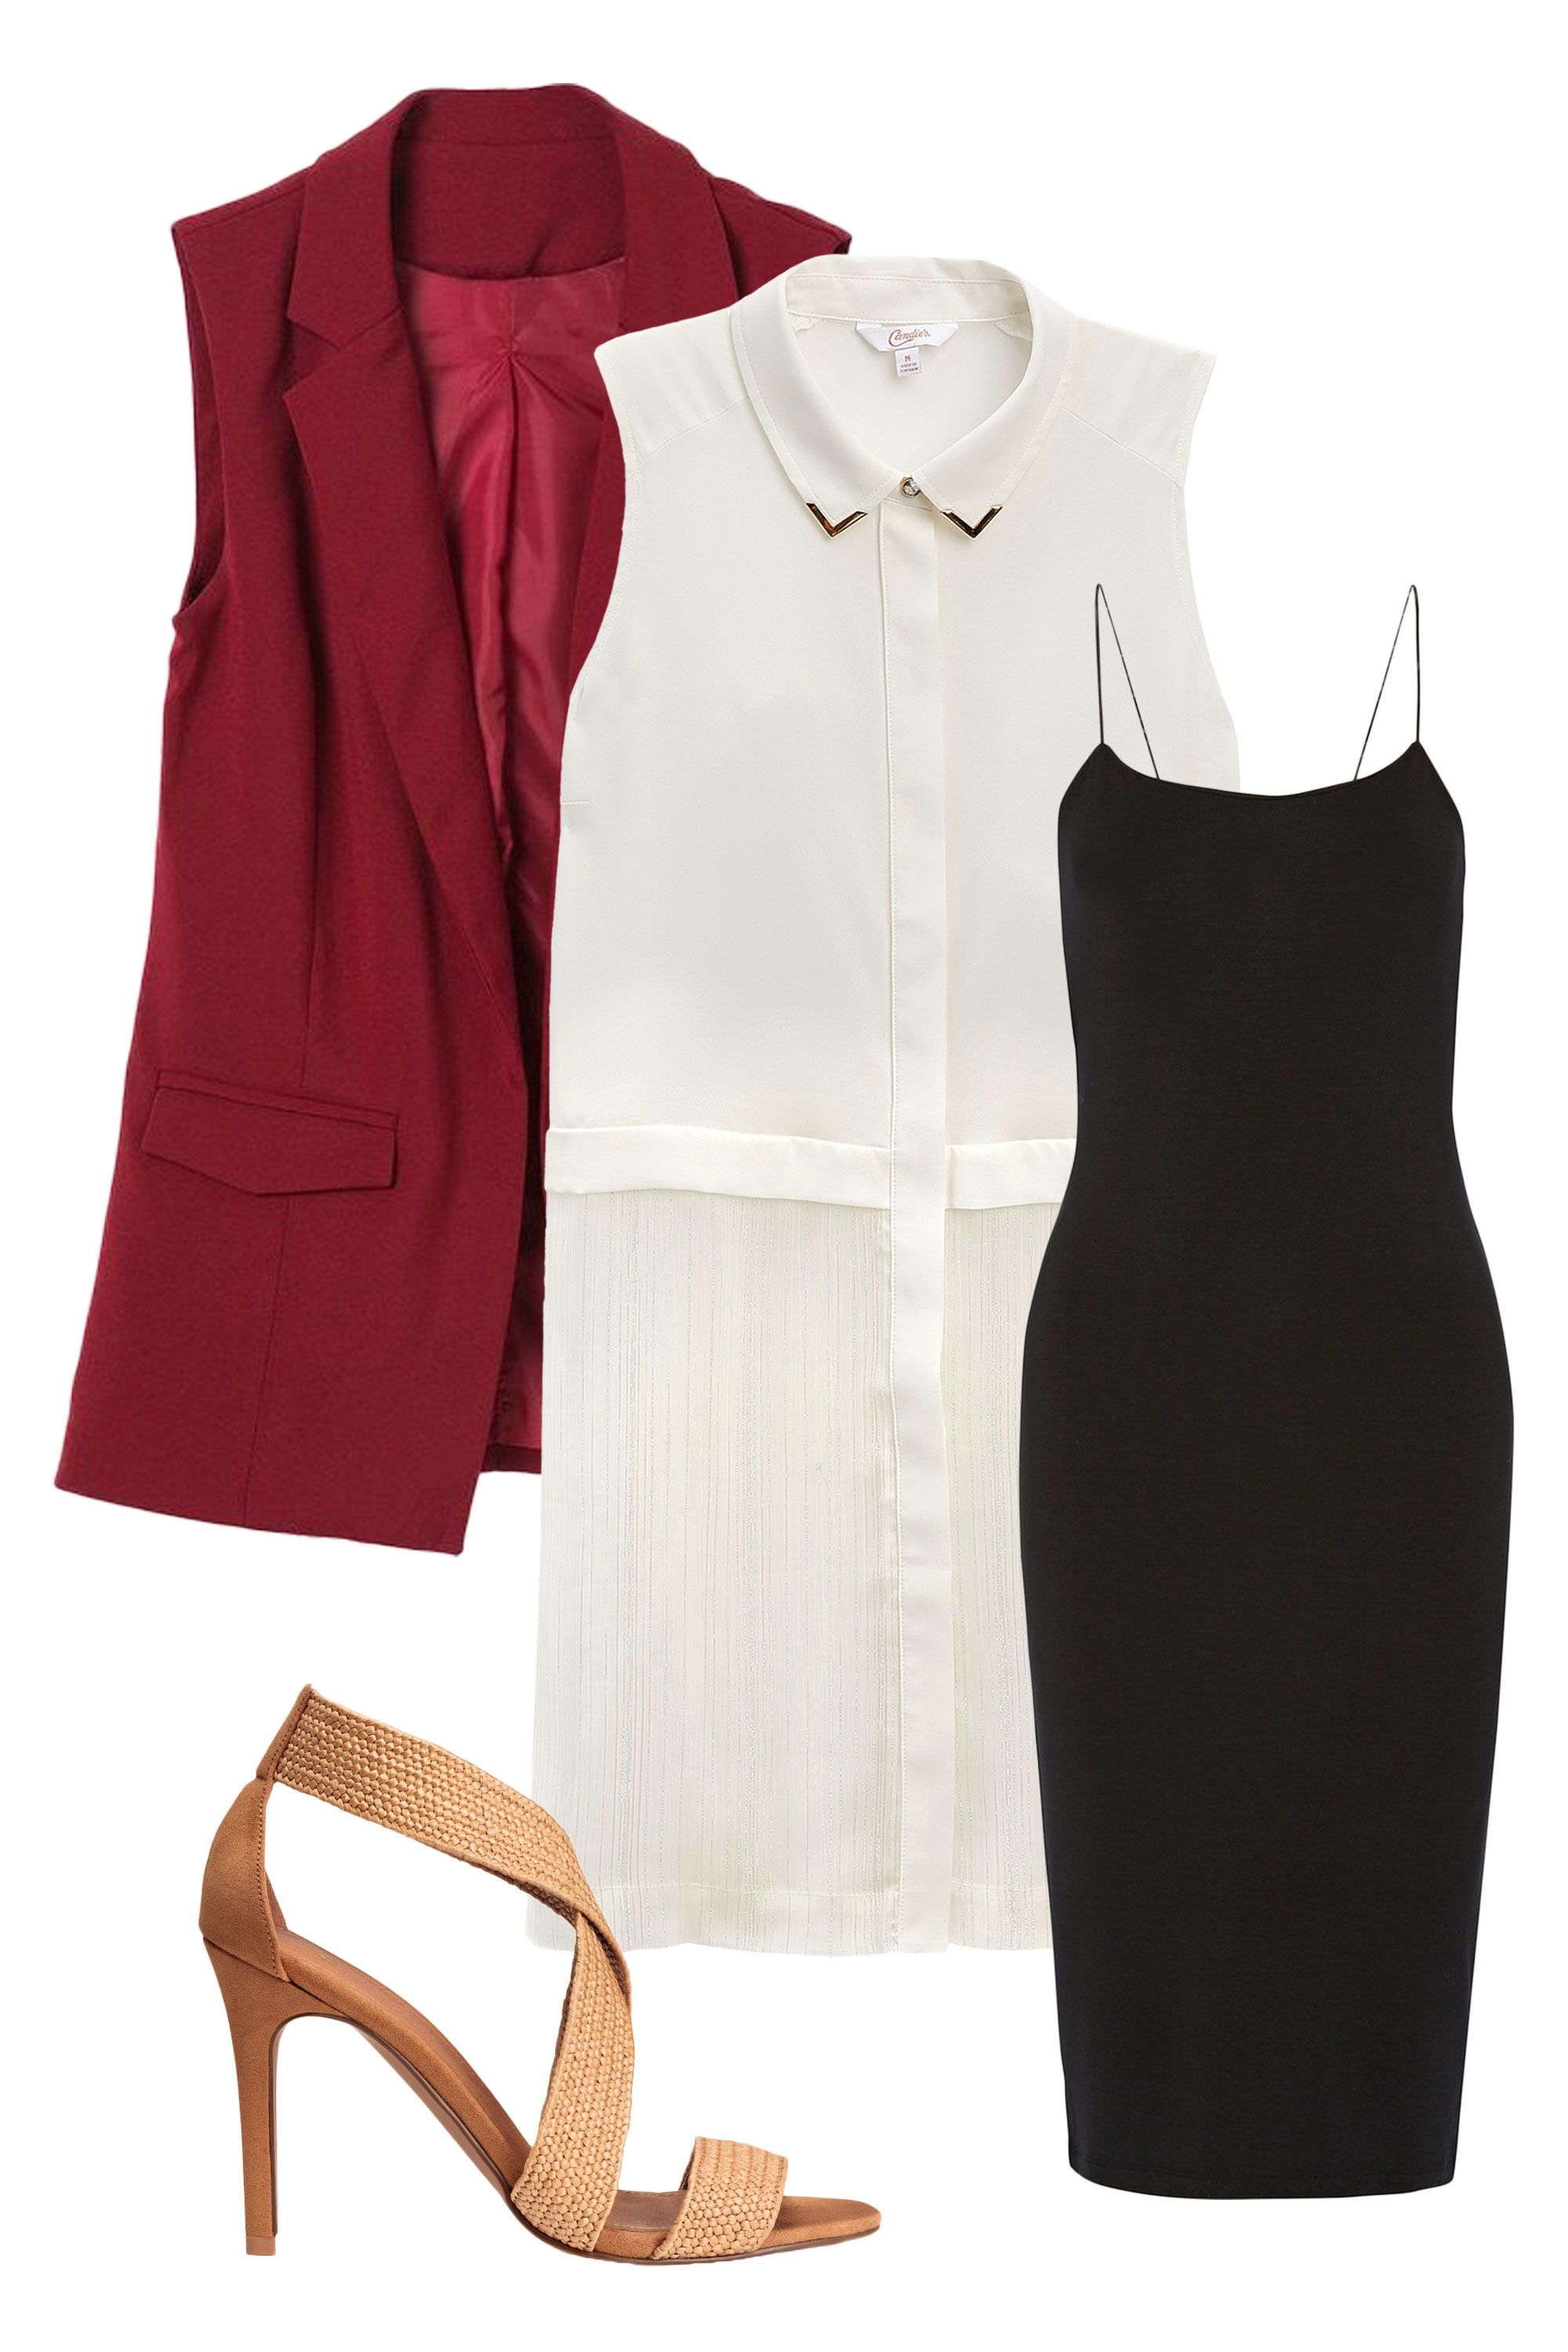 """<p>Pair this crisp button-down number with a fitted jersey dress <em>and</em> longline sleeveless vest. These pieces are thin enough to work into your look without making you look like the Michelin Man, while the contrasting hues will set your style apart from a sea of navy pencil skirts. Finish up with a neutral strappy heel, and you're ready to nail that morning meeting. (Actually, an iced coffee would be nice...)</p><p><span></span></p><p><em><br></em></p><p> <em><i><a href=""""http://www.kohls.com/product/prd-2586786/juniors-candies-button-front-tunic-shirt.jsp?color=Marshmallow&cid=DIS16FallTPR4&utm_campaign=201607_Candies_Cosmo&utm_medium=3p_dis&utm_source=Candies&utm_content=ad_1"""" target=""""_blank"""">Button-Front Tunic Shirt</a>, CANDIE'S, $38</i></em>&#x3B; <em><a href=""""https://www.net-a-porter.com/us/en/product/732125/t_by_alexander_wang/cutout-stretch-modal-jersey-dress"""" target=""""_blank"""">Cutout Stretch-Modal Jersey Dress</a>, T BY ALEXANDER WANG, $155&#x3B; <a href=""""http://genuine-people.com/products/red-sleeveless-silky-chiffon-vest?variant=10388923589"""" target=""""_blank"""">Sleeveless Long Vest</a>, GENUINE PEOPLE, $45&#x3B;  <a href=""""http://www.hm.com/us/product/46894?article=46894-B"""" target=""""_blank"""">Natural Sandals</a>, H&M, $39.99</em></p>"""